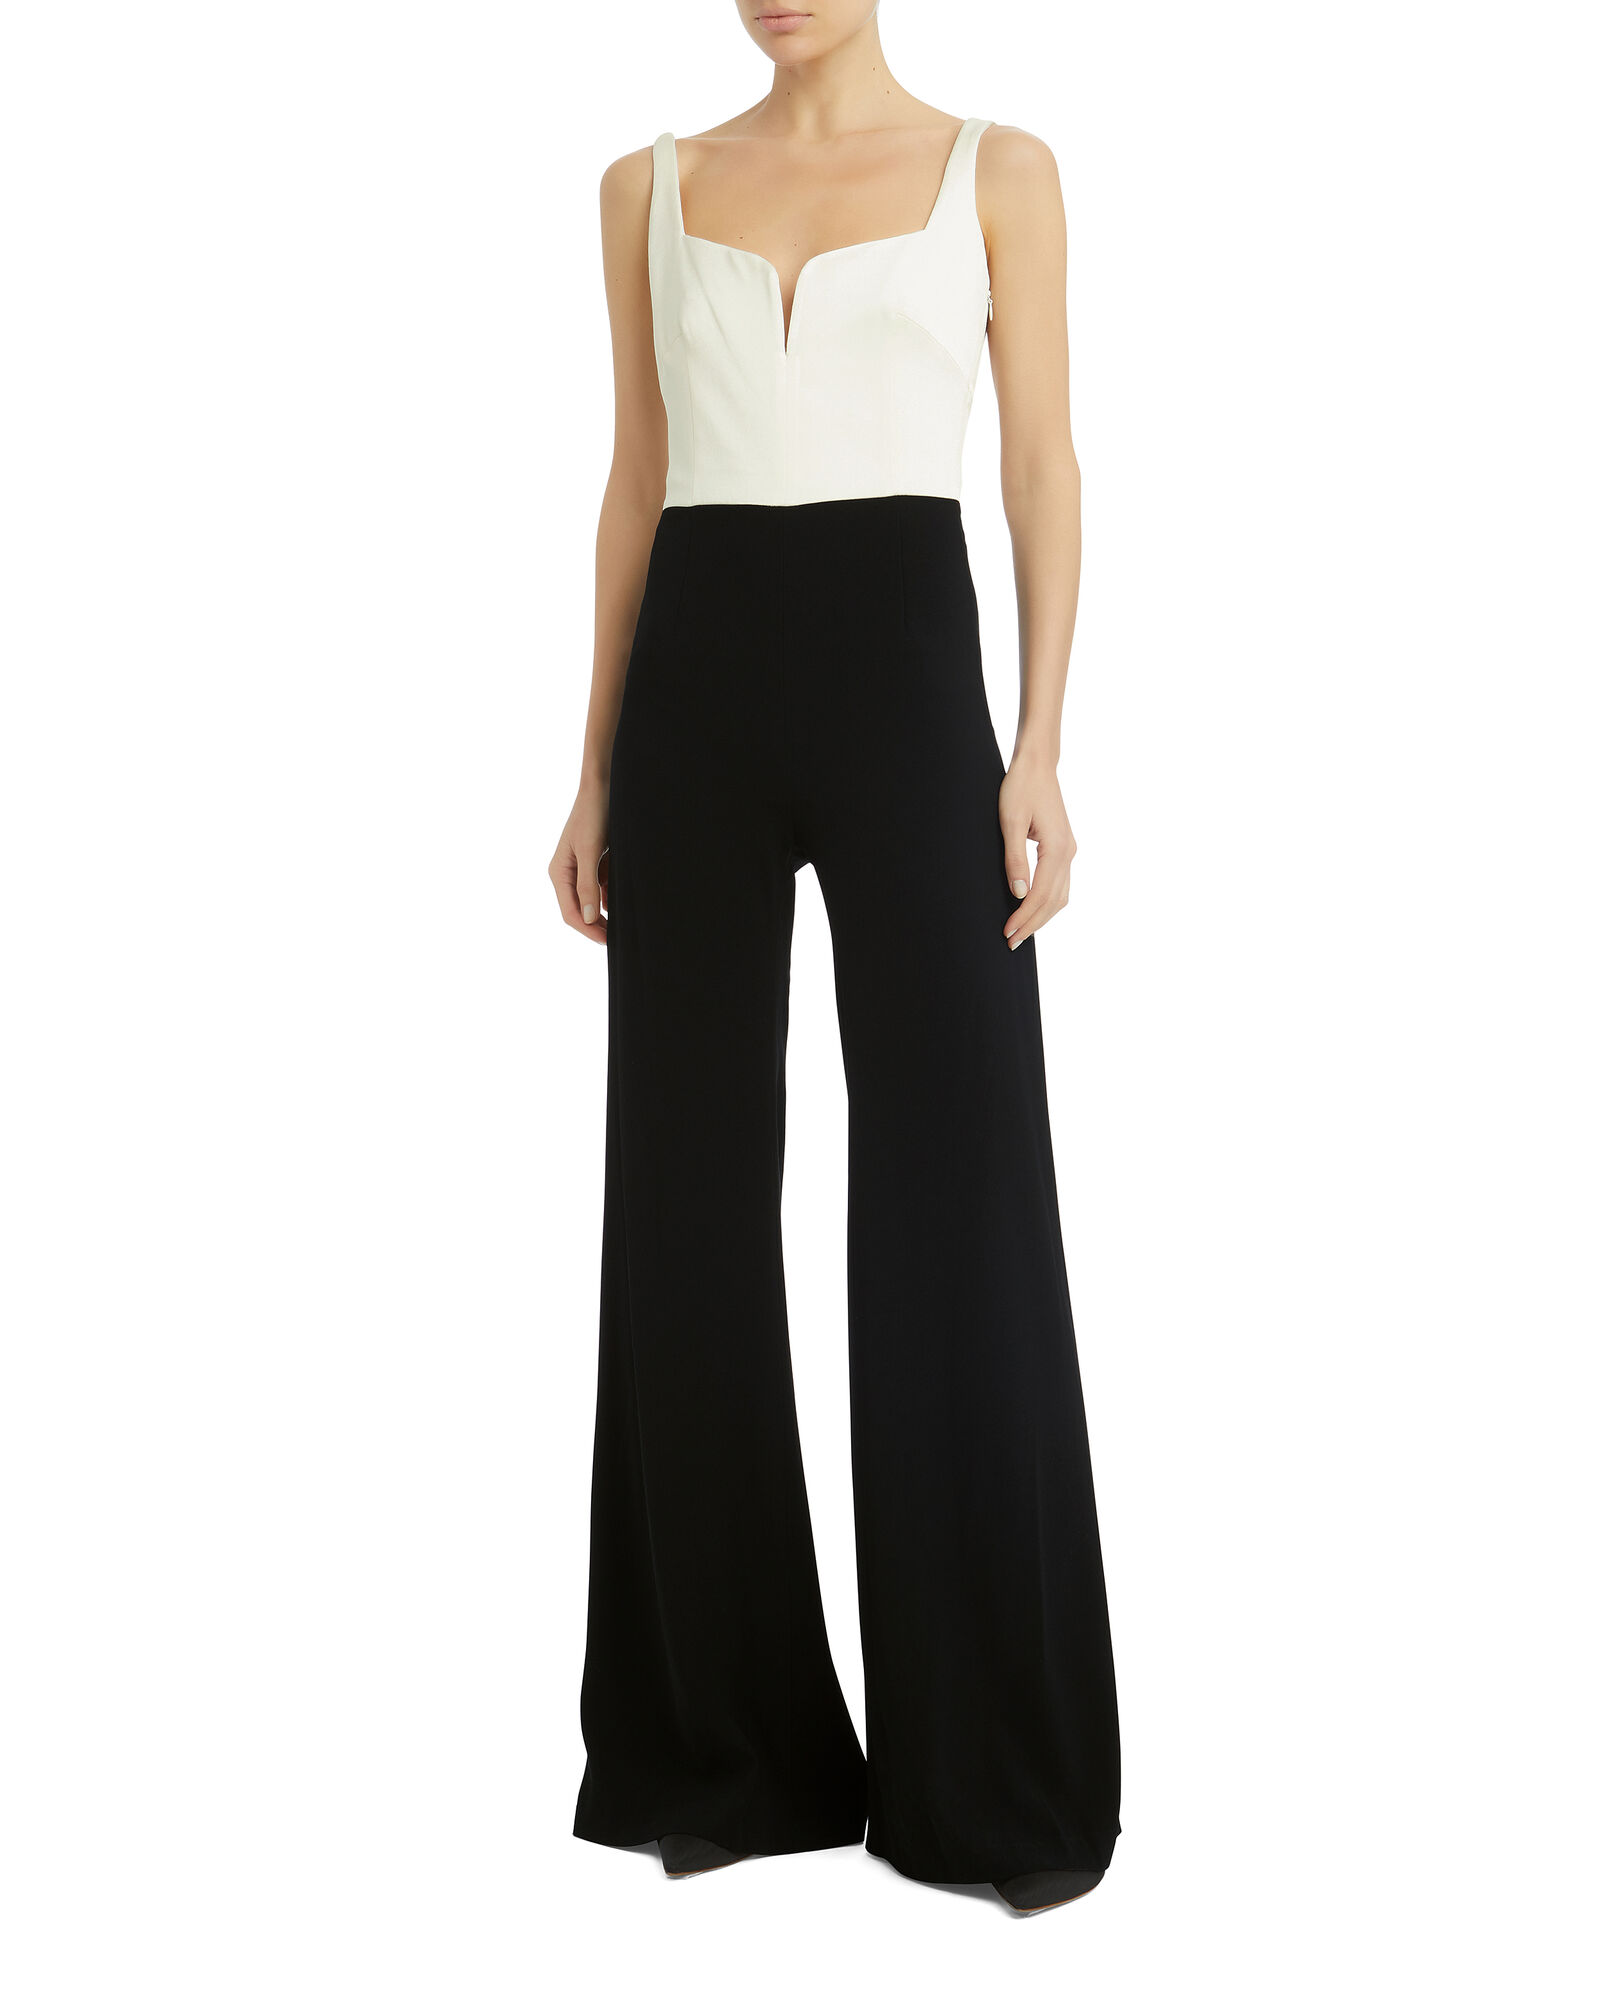 Eclipse Jumpsuit, BLACK/WHITE, hi-res